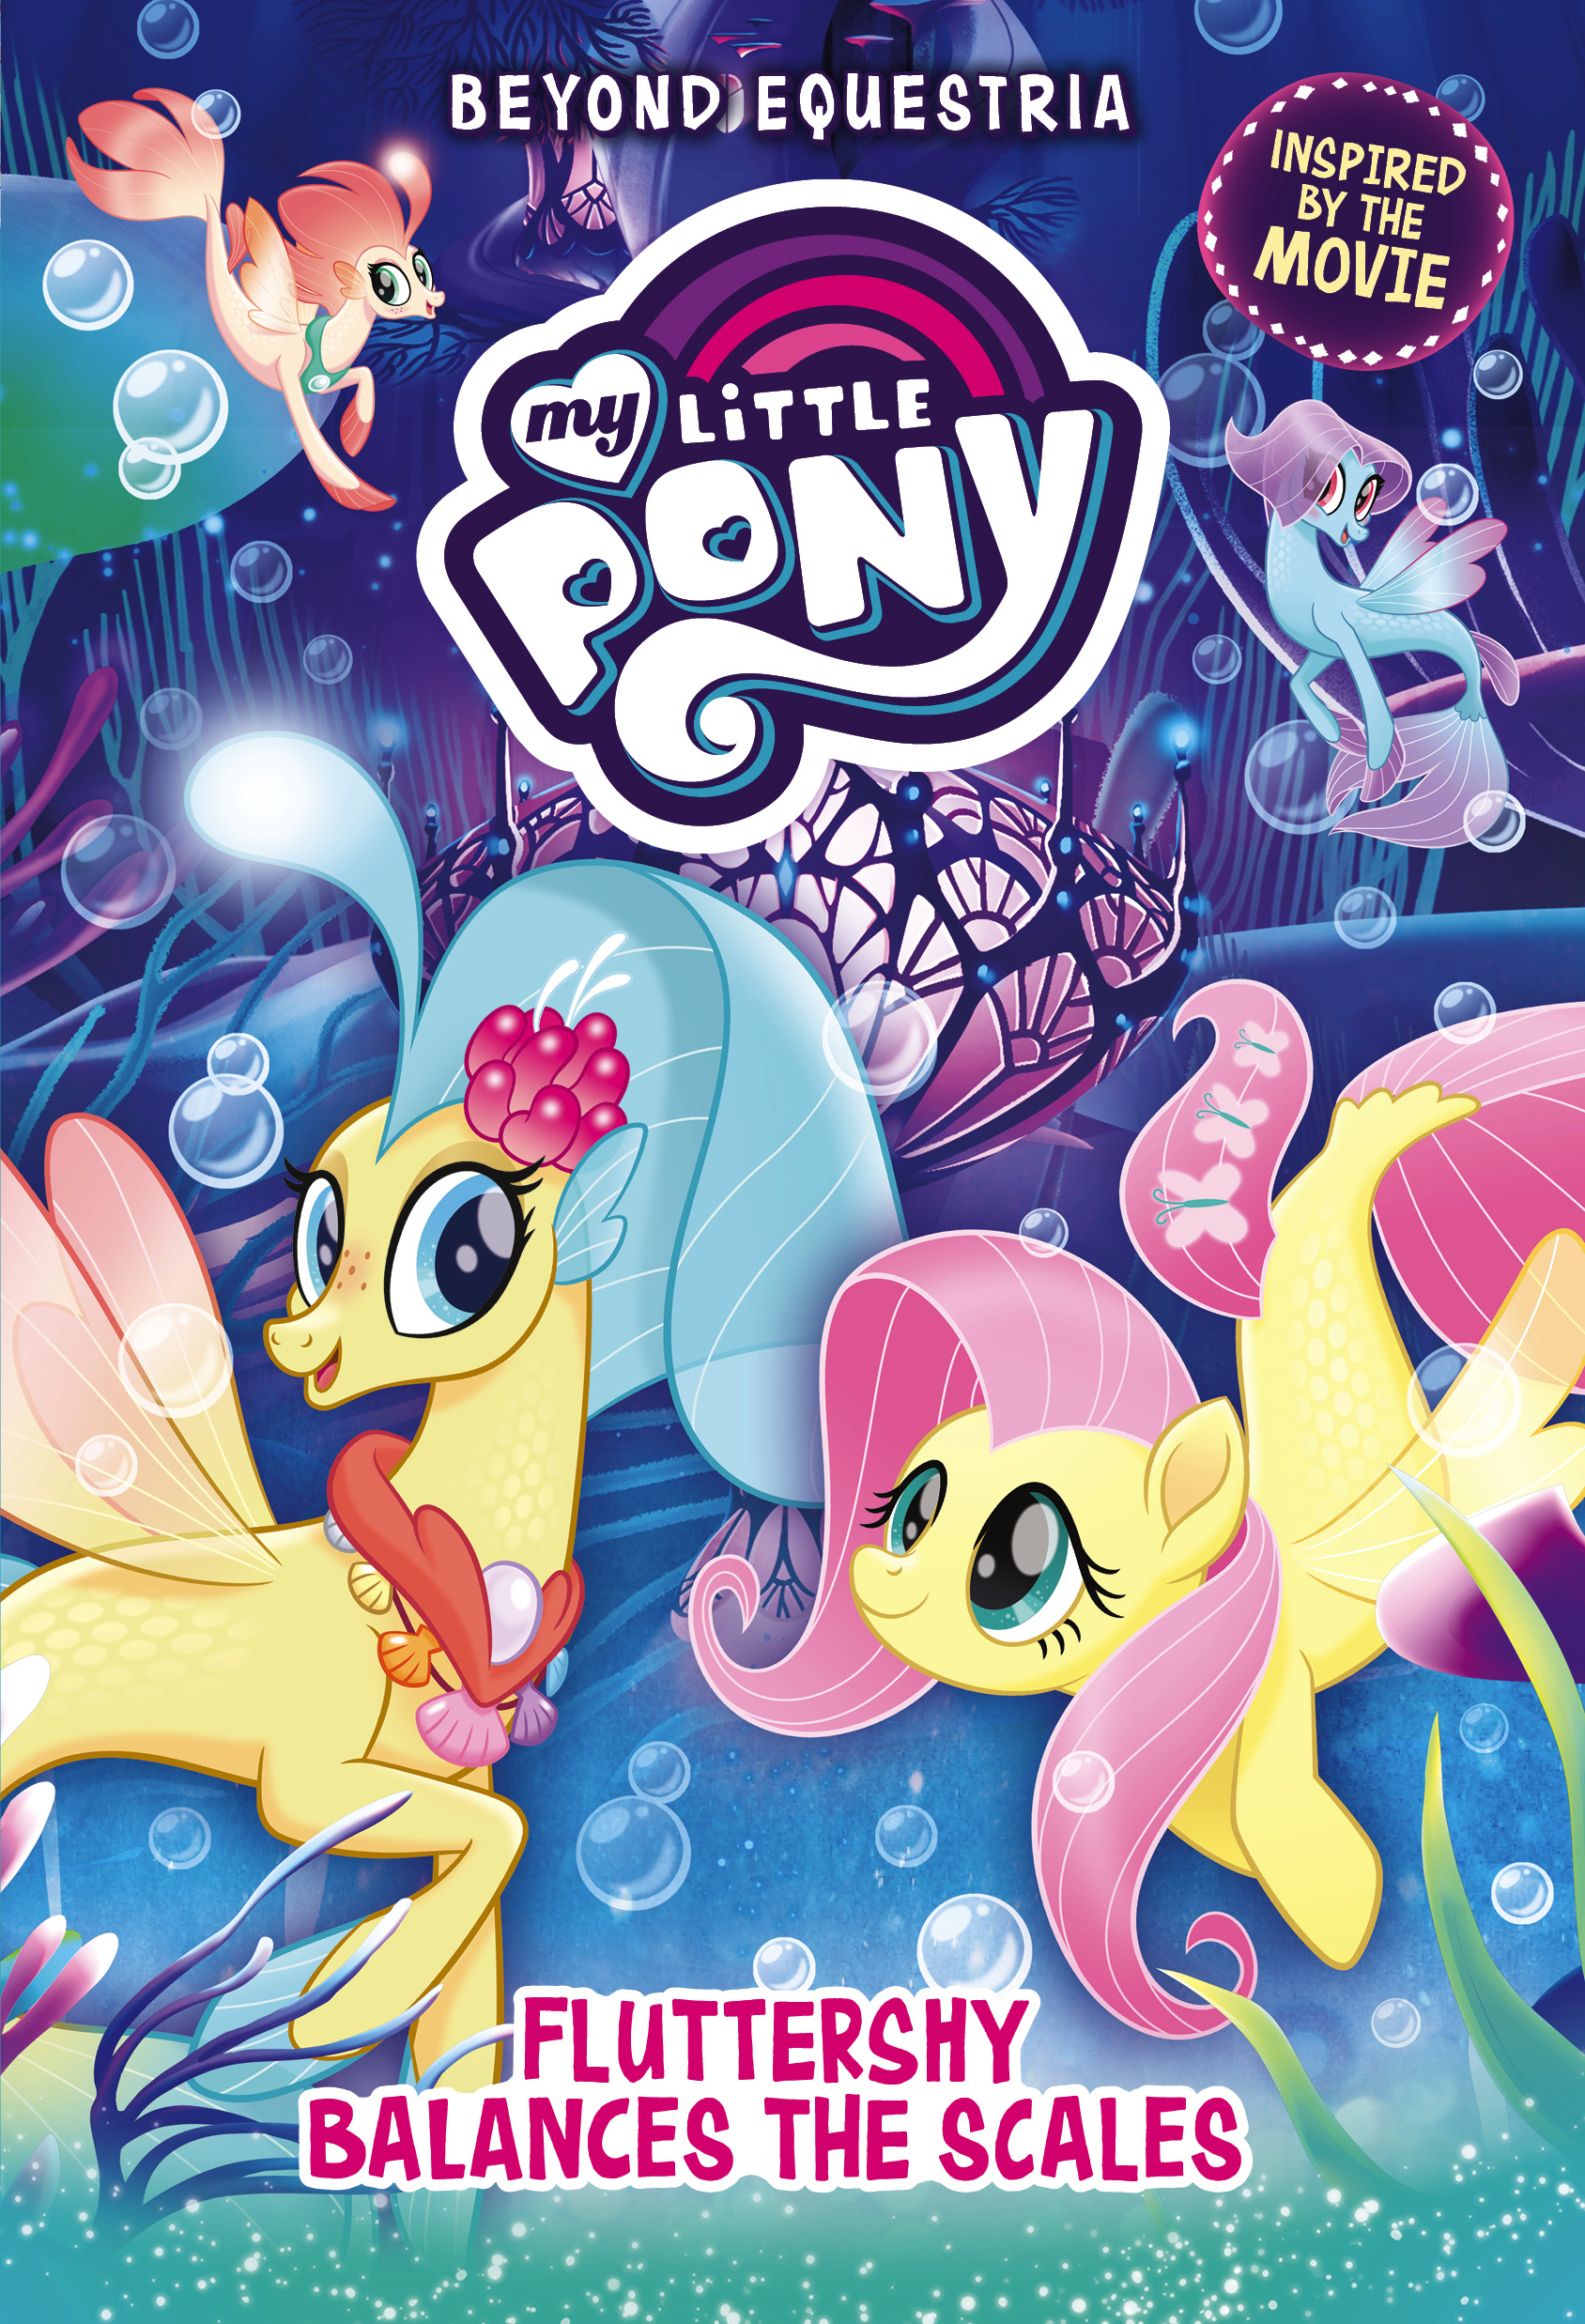 My Little Pony Beyond Equestria: Fluttershy Balances the Scales